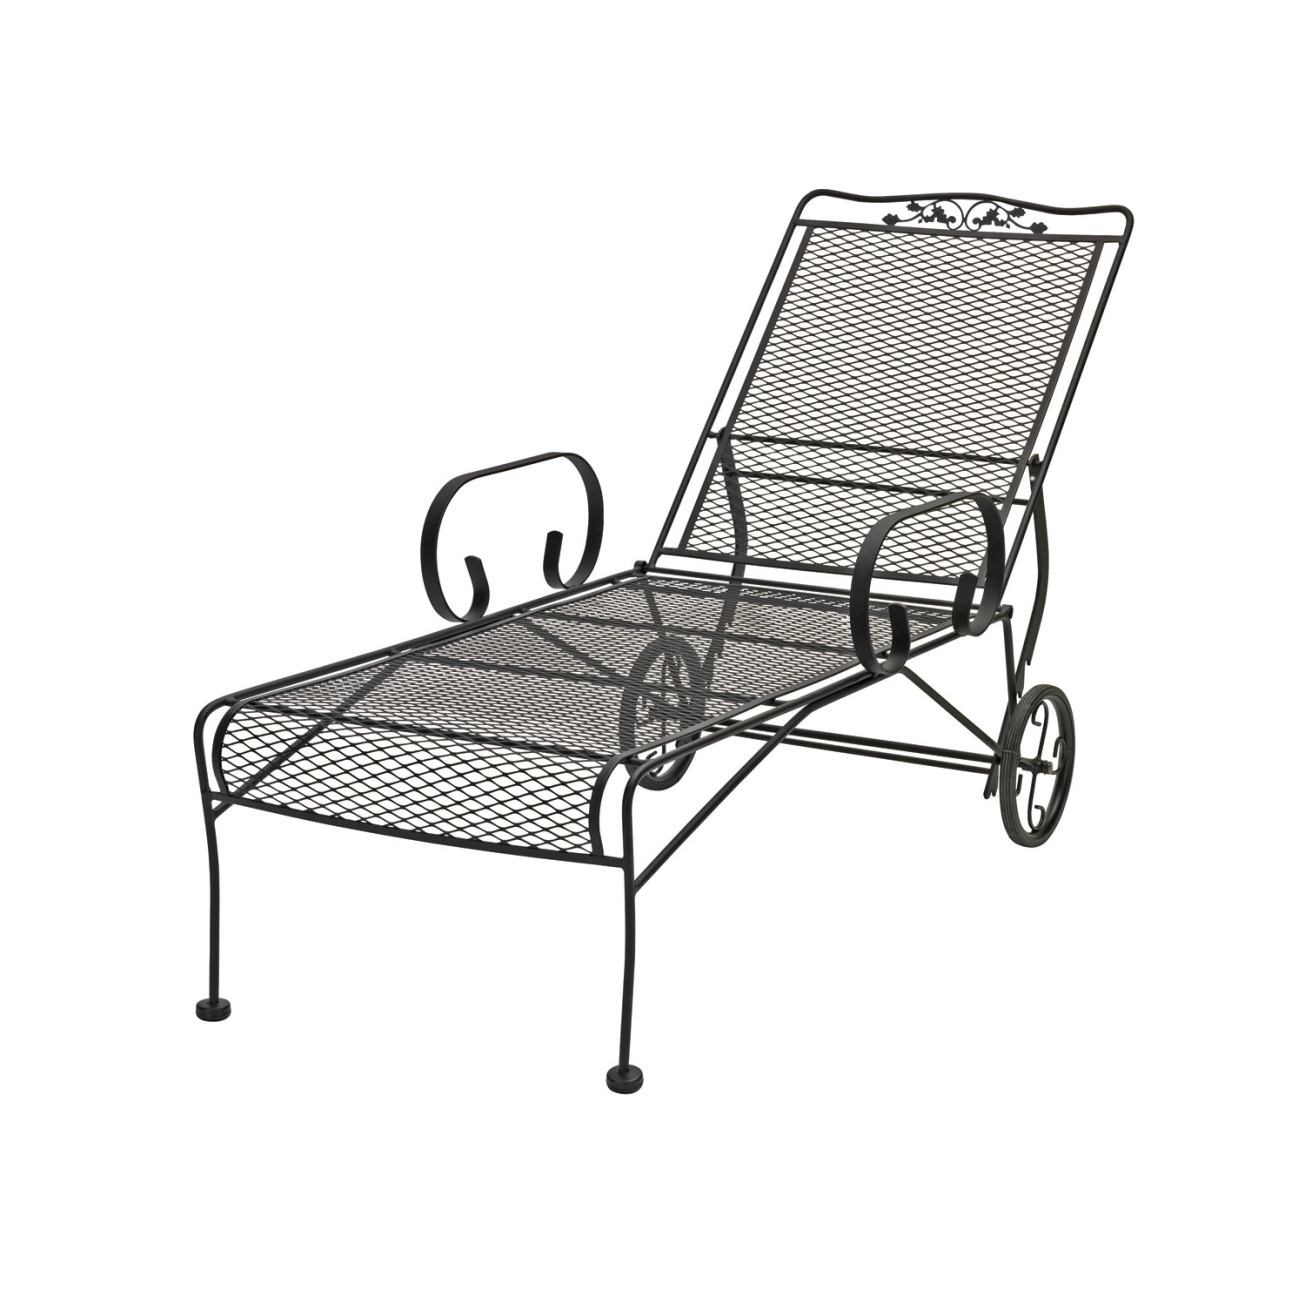 Outdoor : Chaise Lounge Outdoor Outdoor Lounge Chairs Clearance In Widely Used Commercial Outdoor Chaise Lounge Chairs (View 10 of 15)